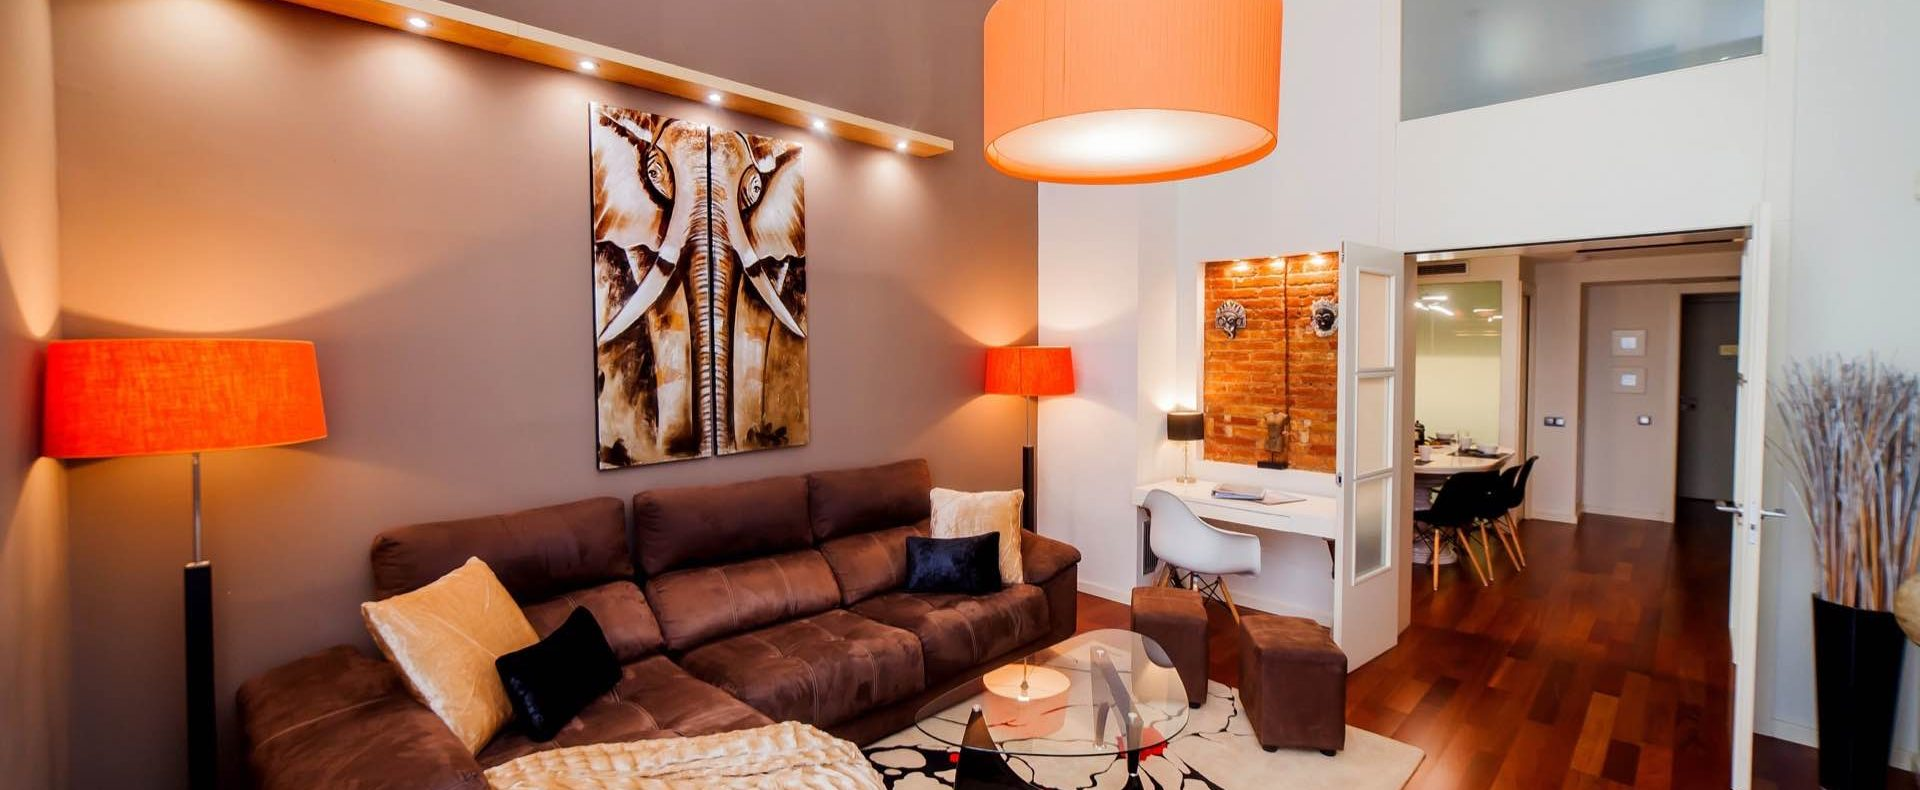 Purodreams is te easiest way to book a last-minute luxury homes. Last-minute lifestyle. In purodreams.com you can find design apartments and luxury villas, with last-minute deals. 